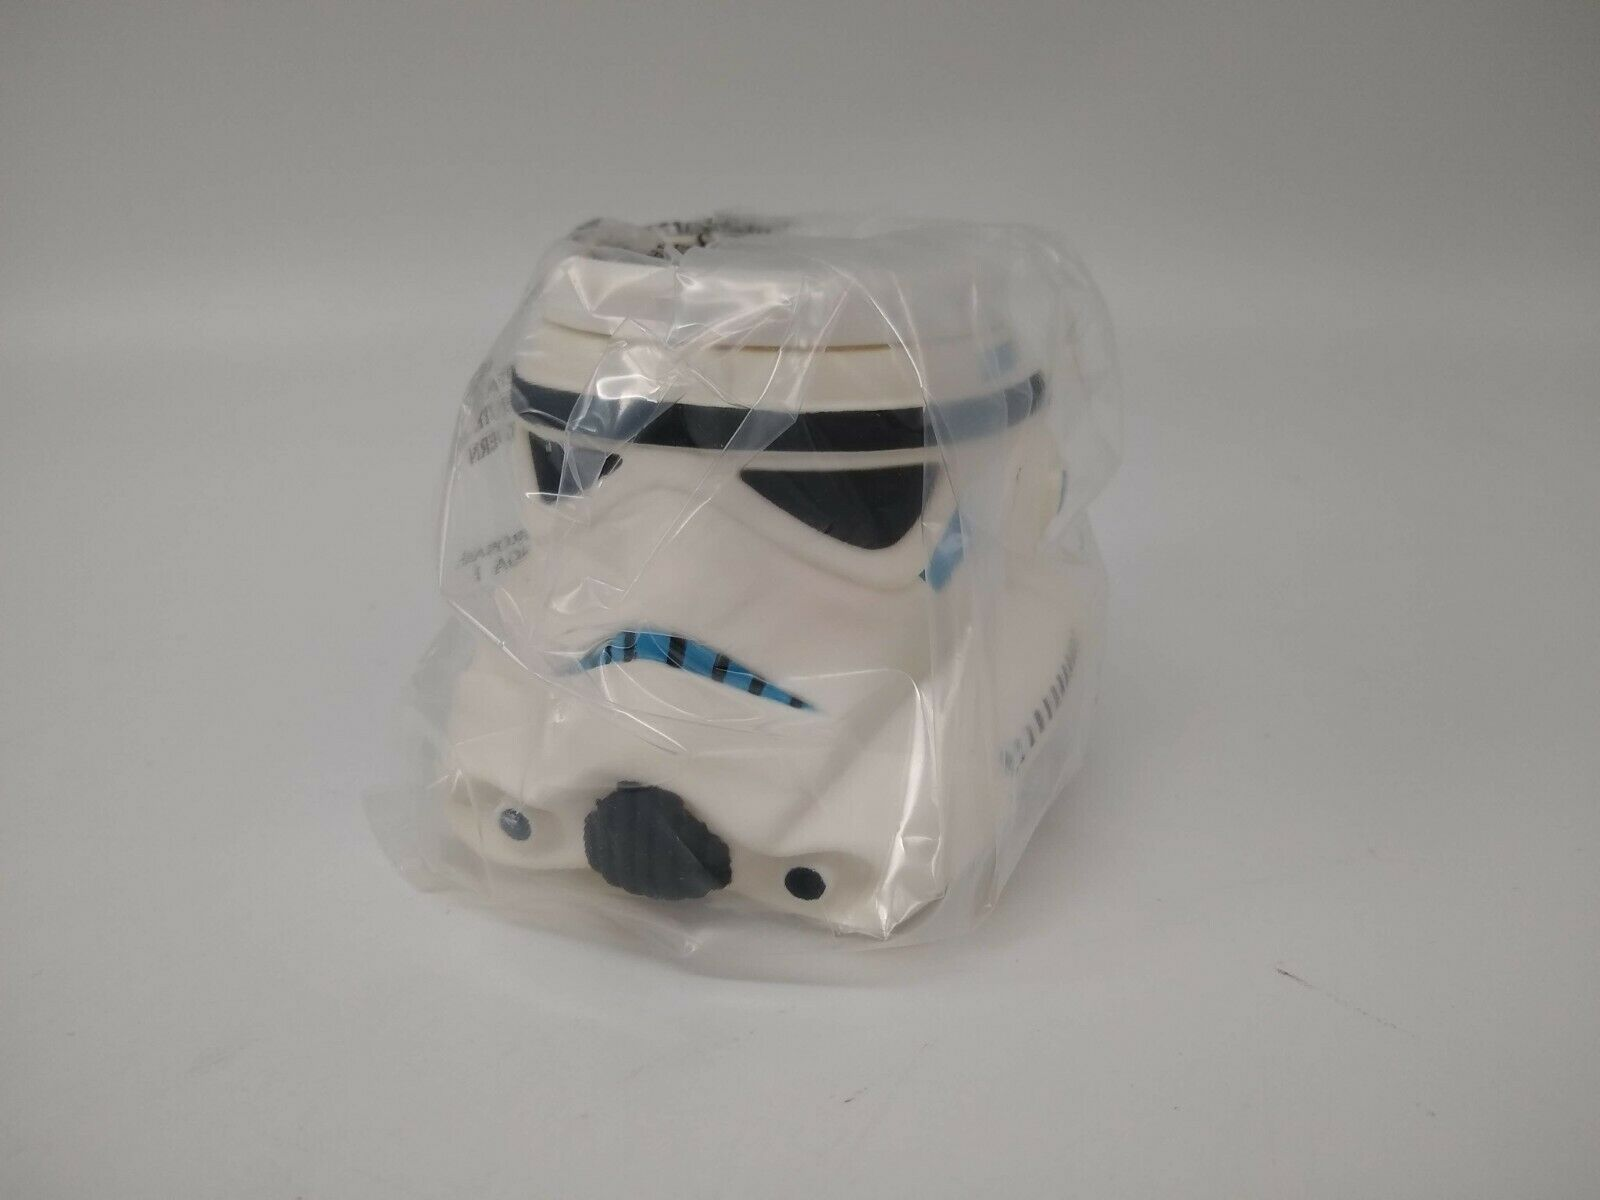 Star Wars Applause Small Stormtrooper Kids Mug - Never Been Used